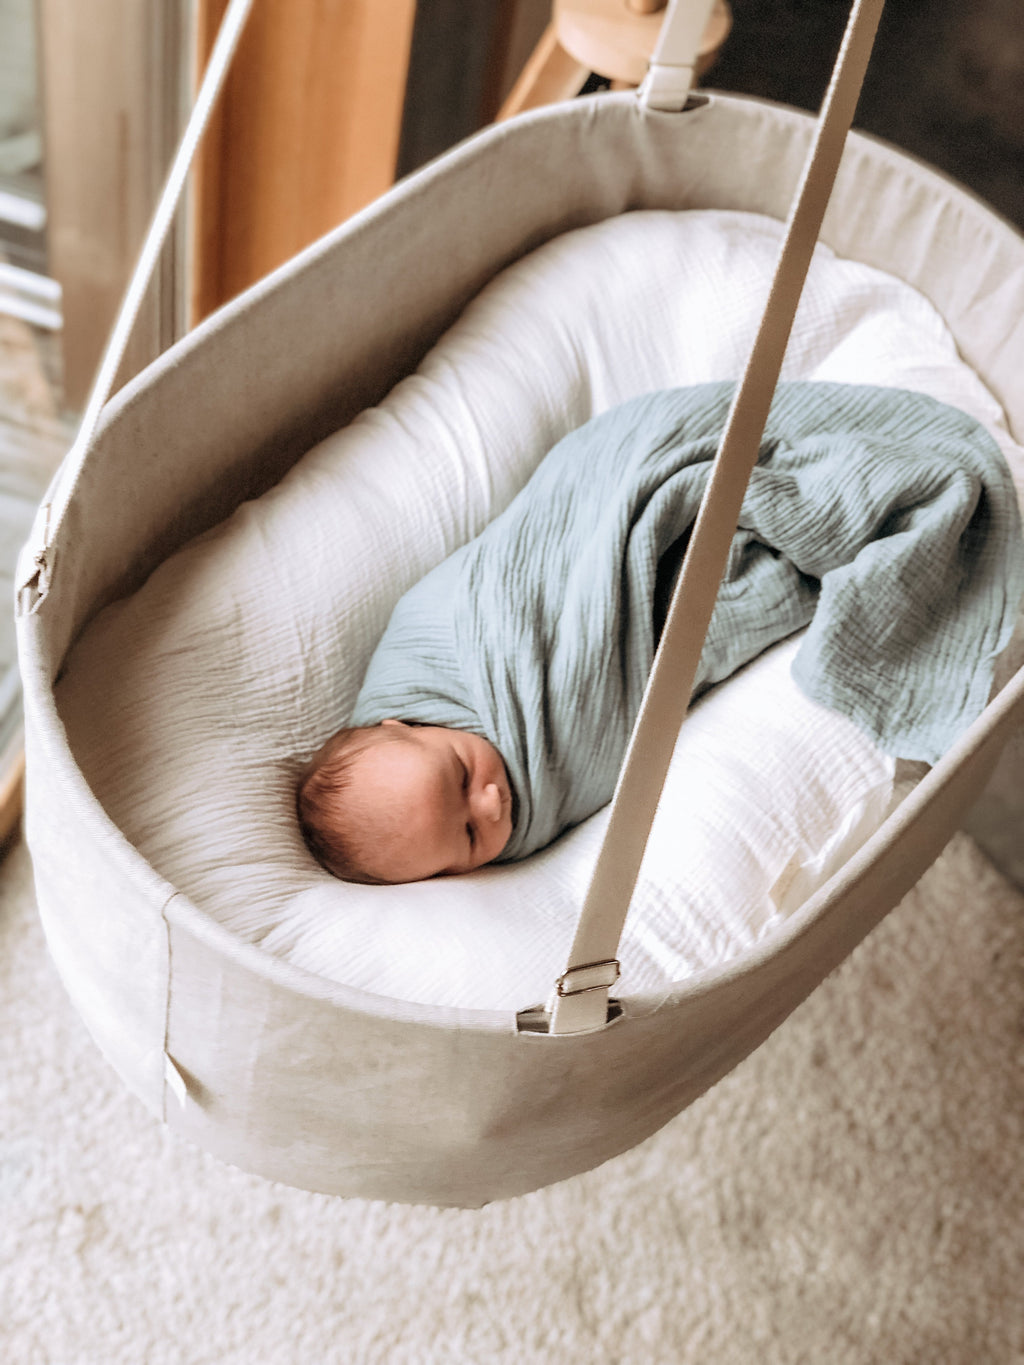 hanging cradle, perfect  baby bed, snuggle baby bed, cozy baby cradle, safe baby bassinet, natural baby bassinet, sensory baby cradle, sensory baby bassinet, rocking cradle, baby muslin swaddle, gauze muslin swaddle, large swaddle, large muslin swaddle, sensory lounger, sensory newborn lounger, sensory baby nest, snuggle nest